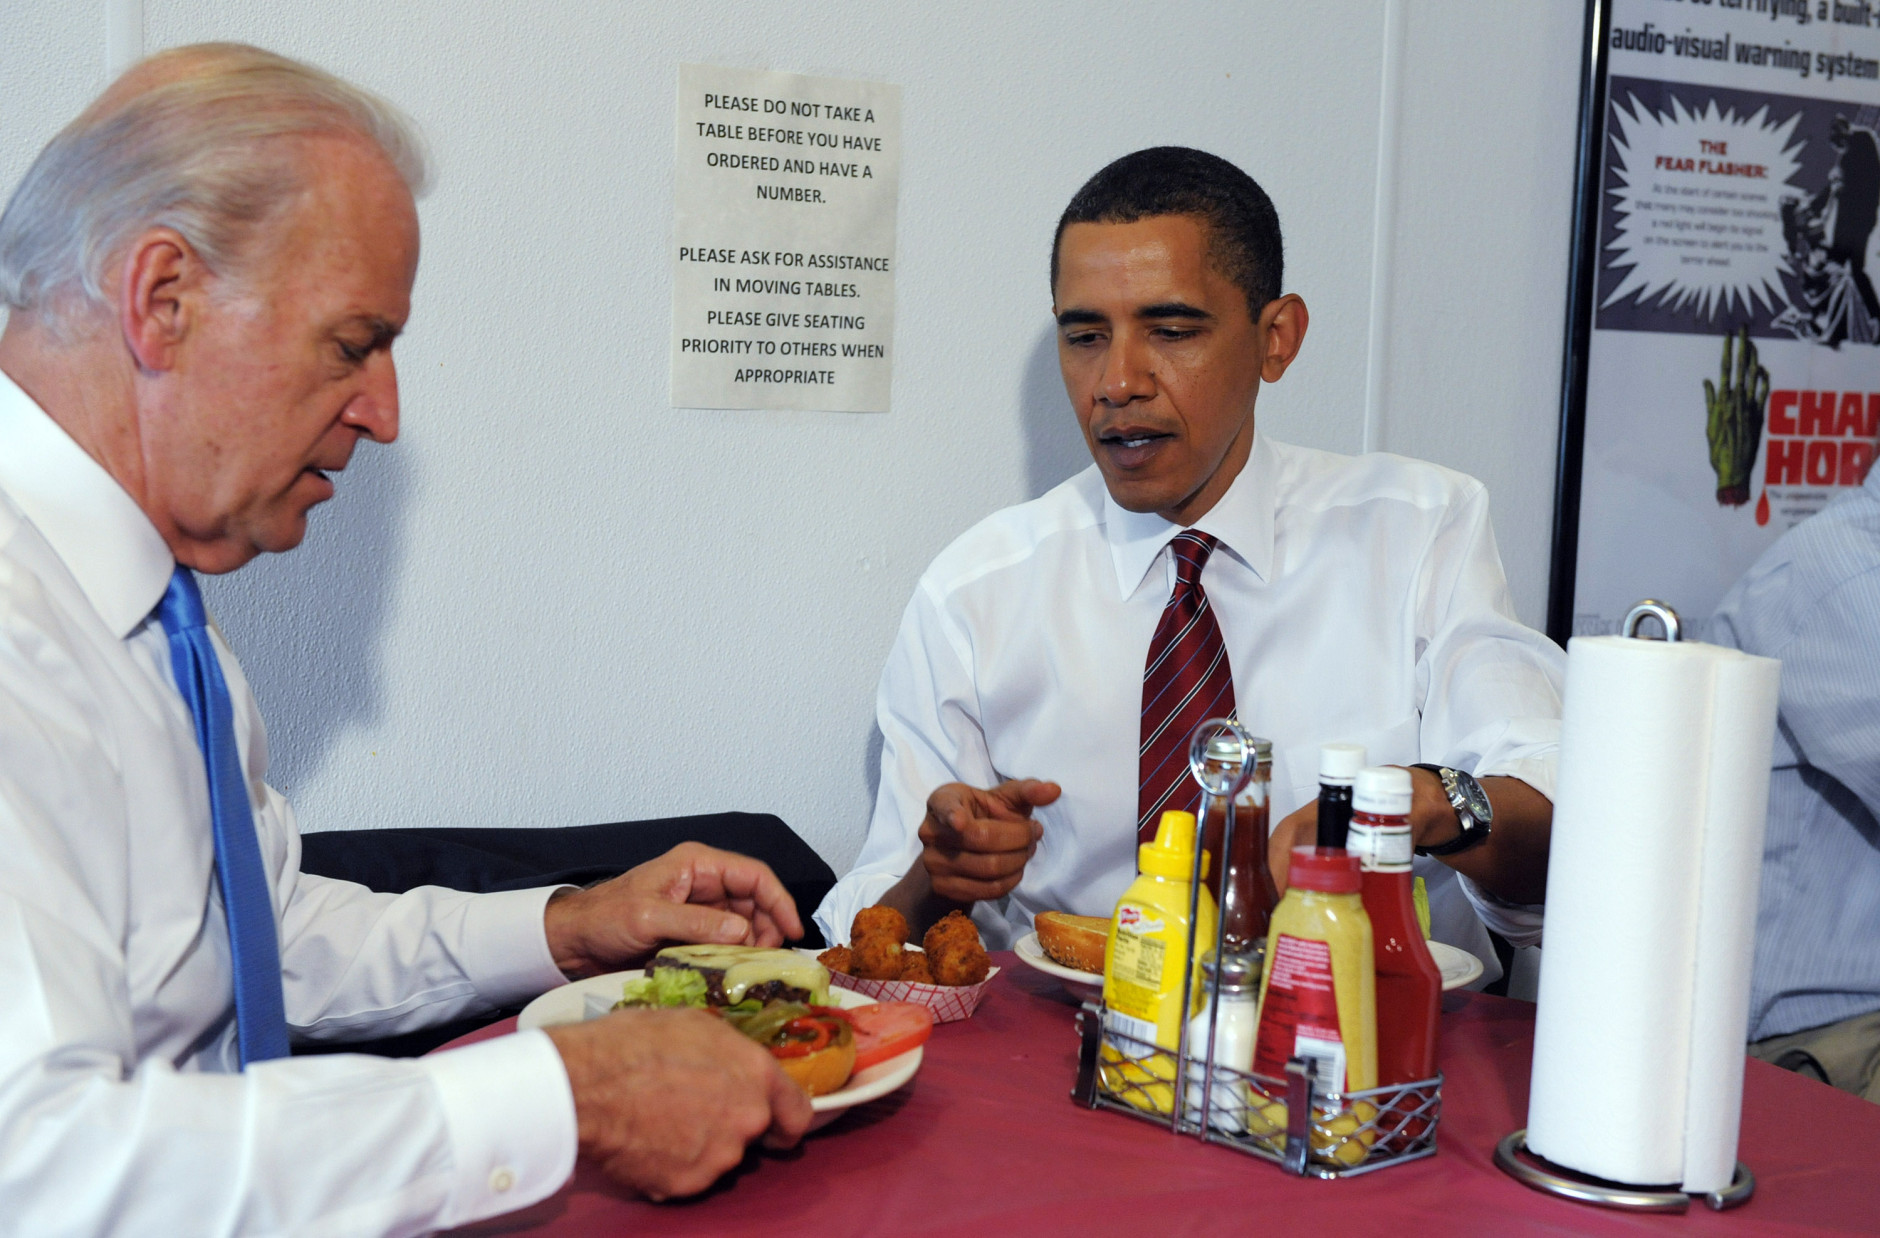 ARLINGTON, VA - MAY 5:  U.S. President Barack Obama (R) and U.S. Vice President Joe Biden sit at a table with their cheeseburger lunch orders at Ray's Hell Burger May 5, 2009 in Arlington, Virginia. Obama and Biden made an unannouced vist to the Arlington restaurant.   (Photo by Roger L. Wollenberg-Pool/ Getty Images)